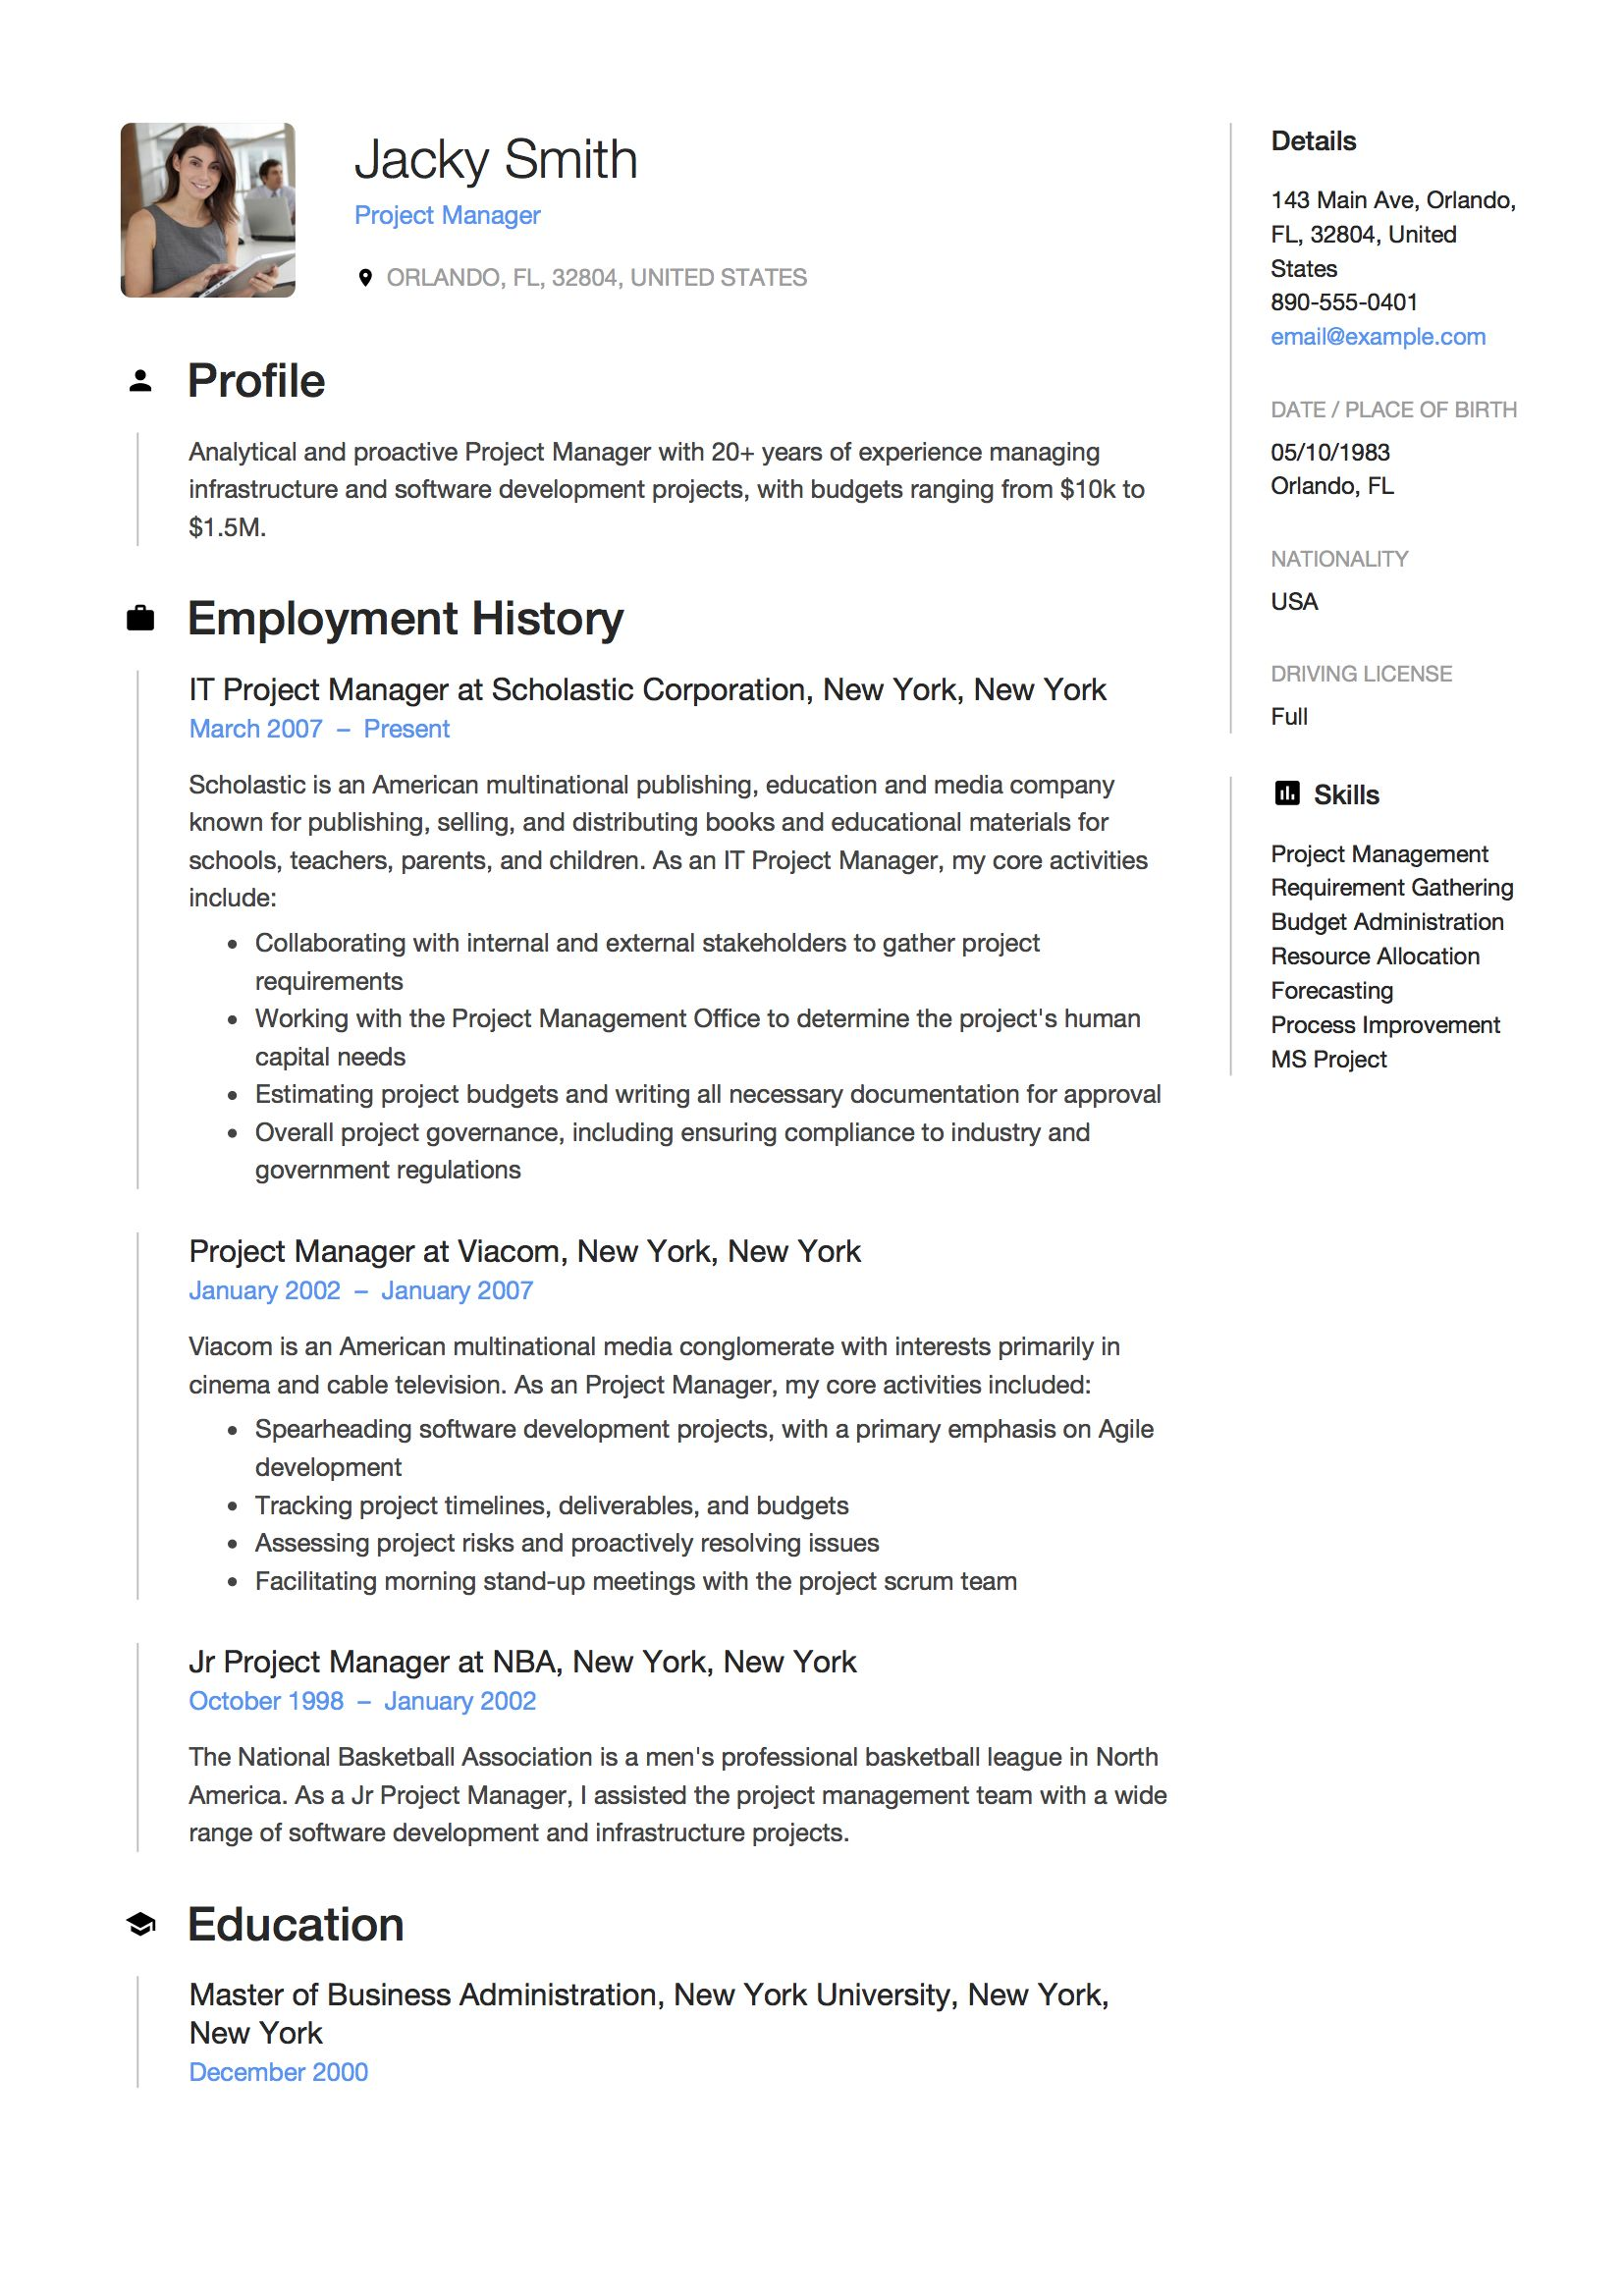 Project Manager Resume Example, Template, Sample, CV